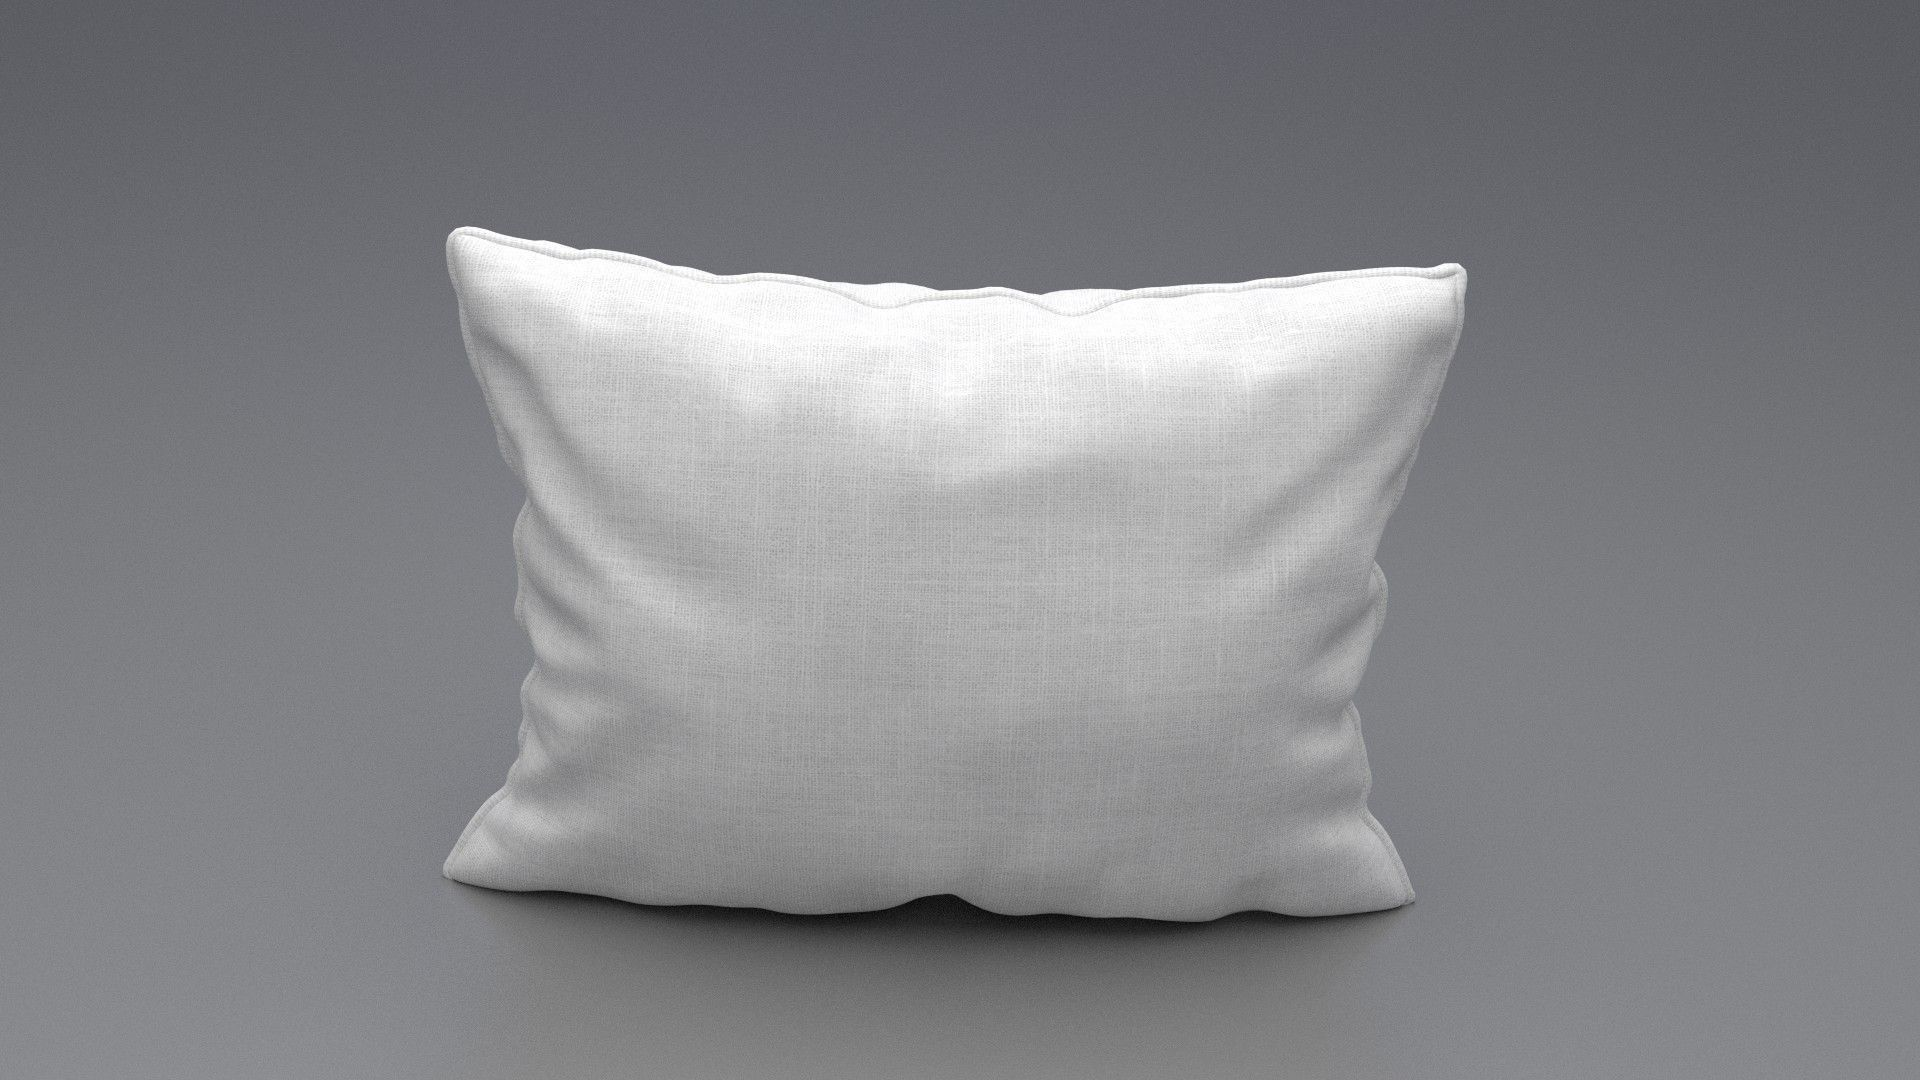 Piped Pillow 3